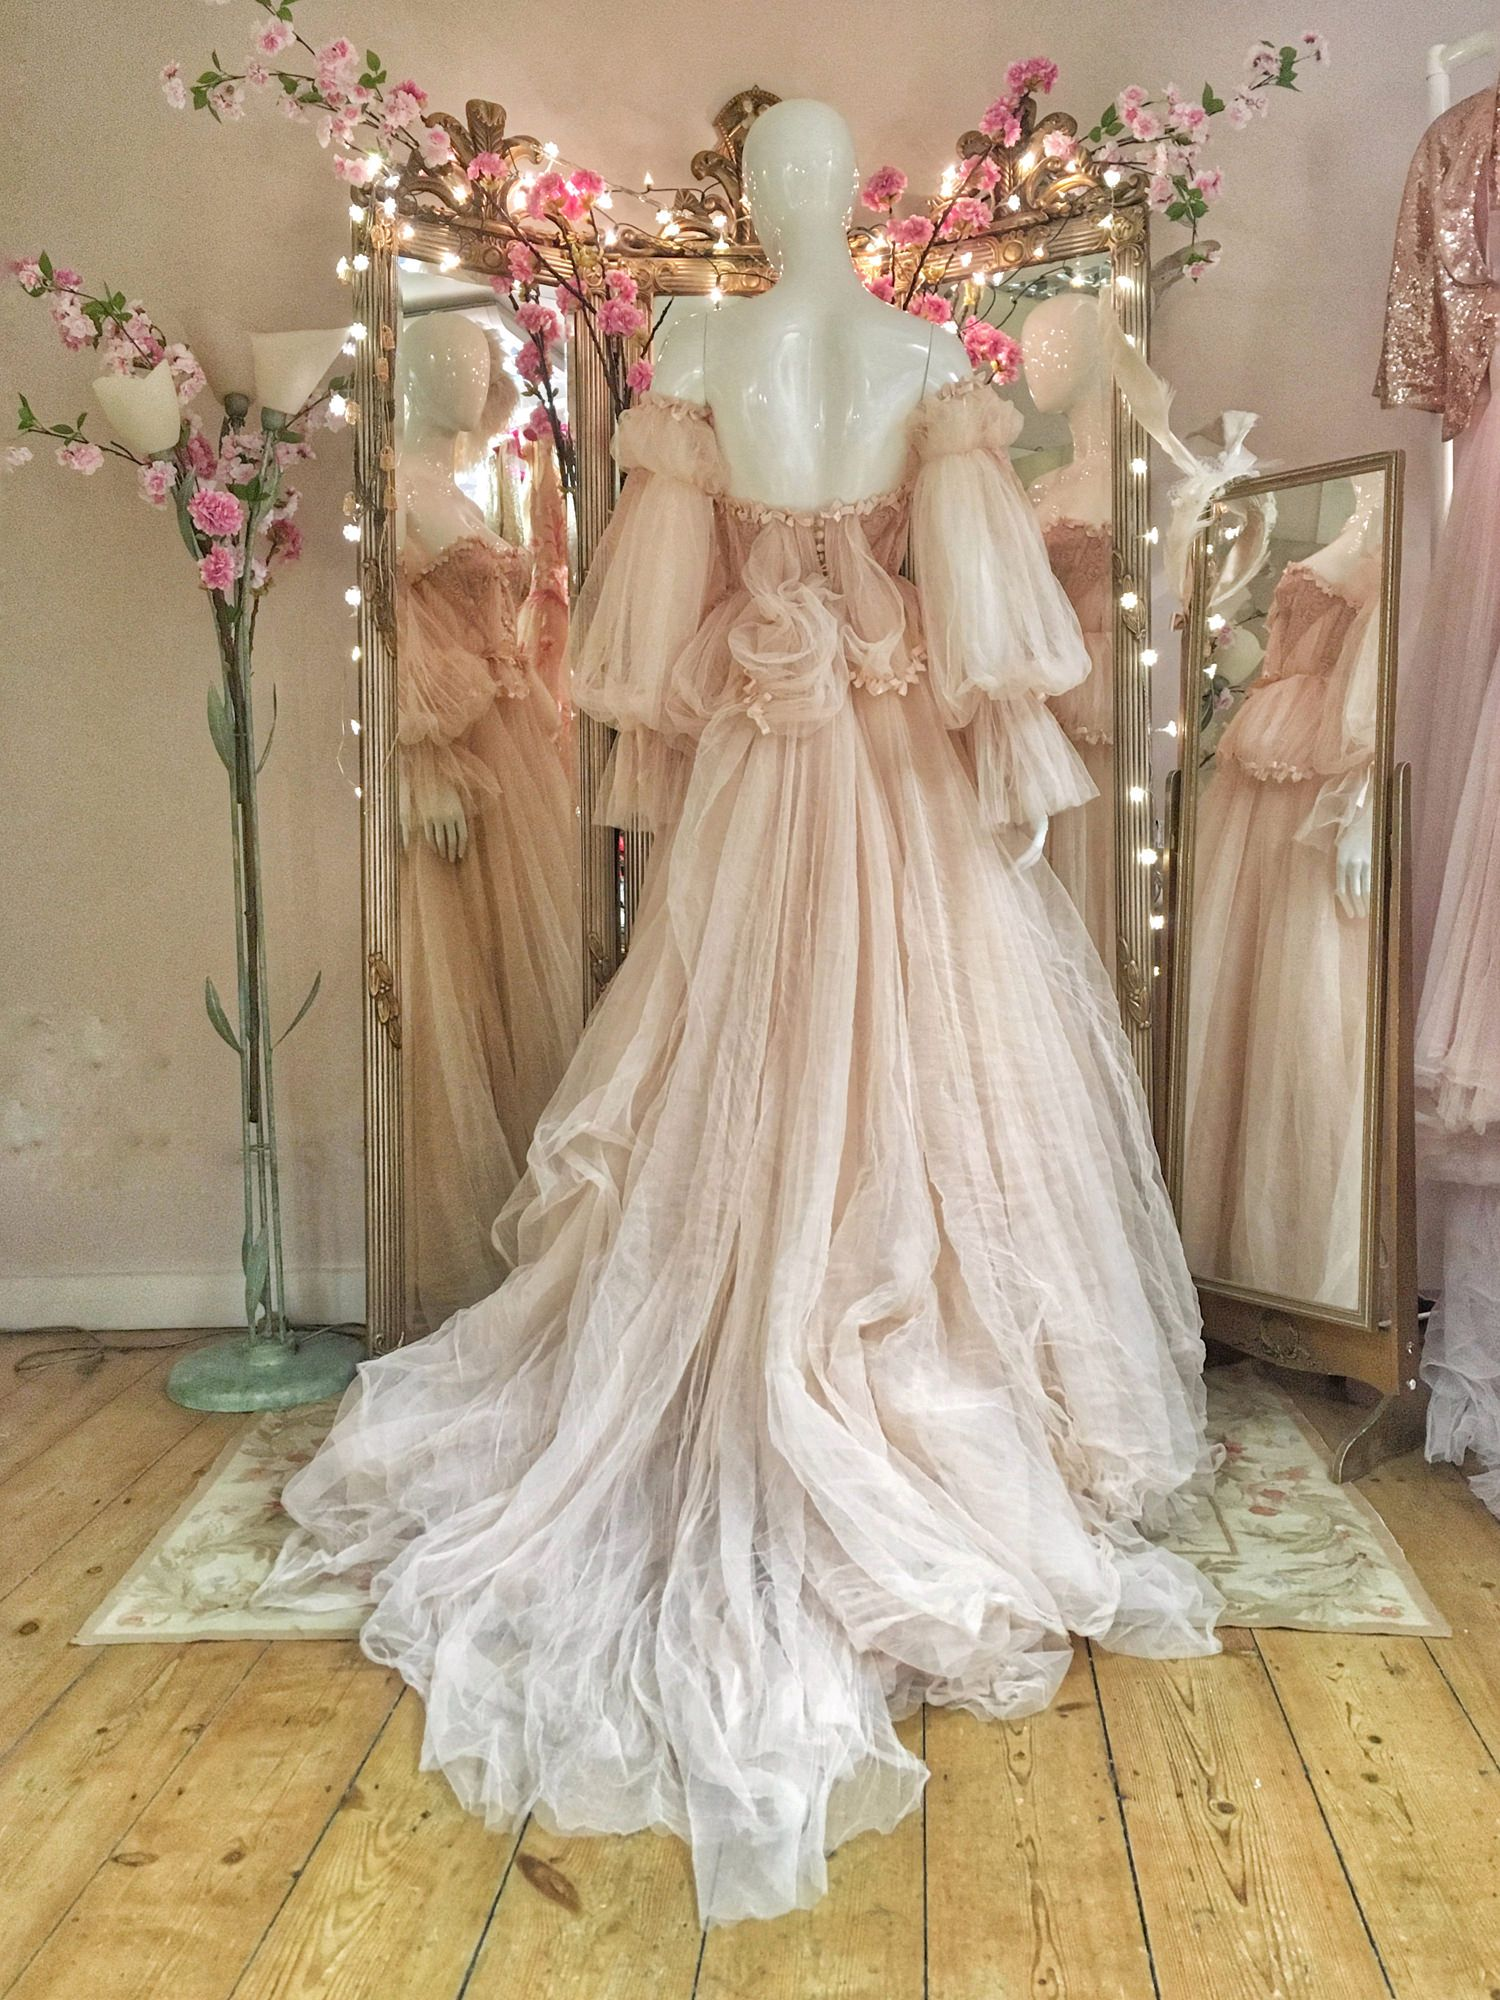 Blush Tulle And Lace Romantic Fairytale Wedding Dress By Joanne Fleming Design: Pink Fairy Wedding Dress At Reisefeber.org